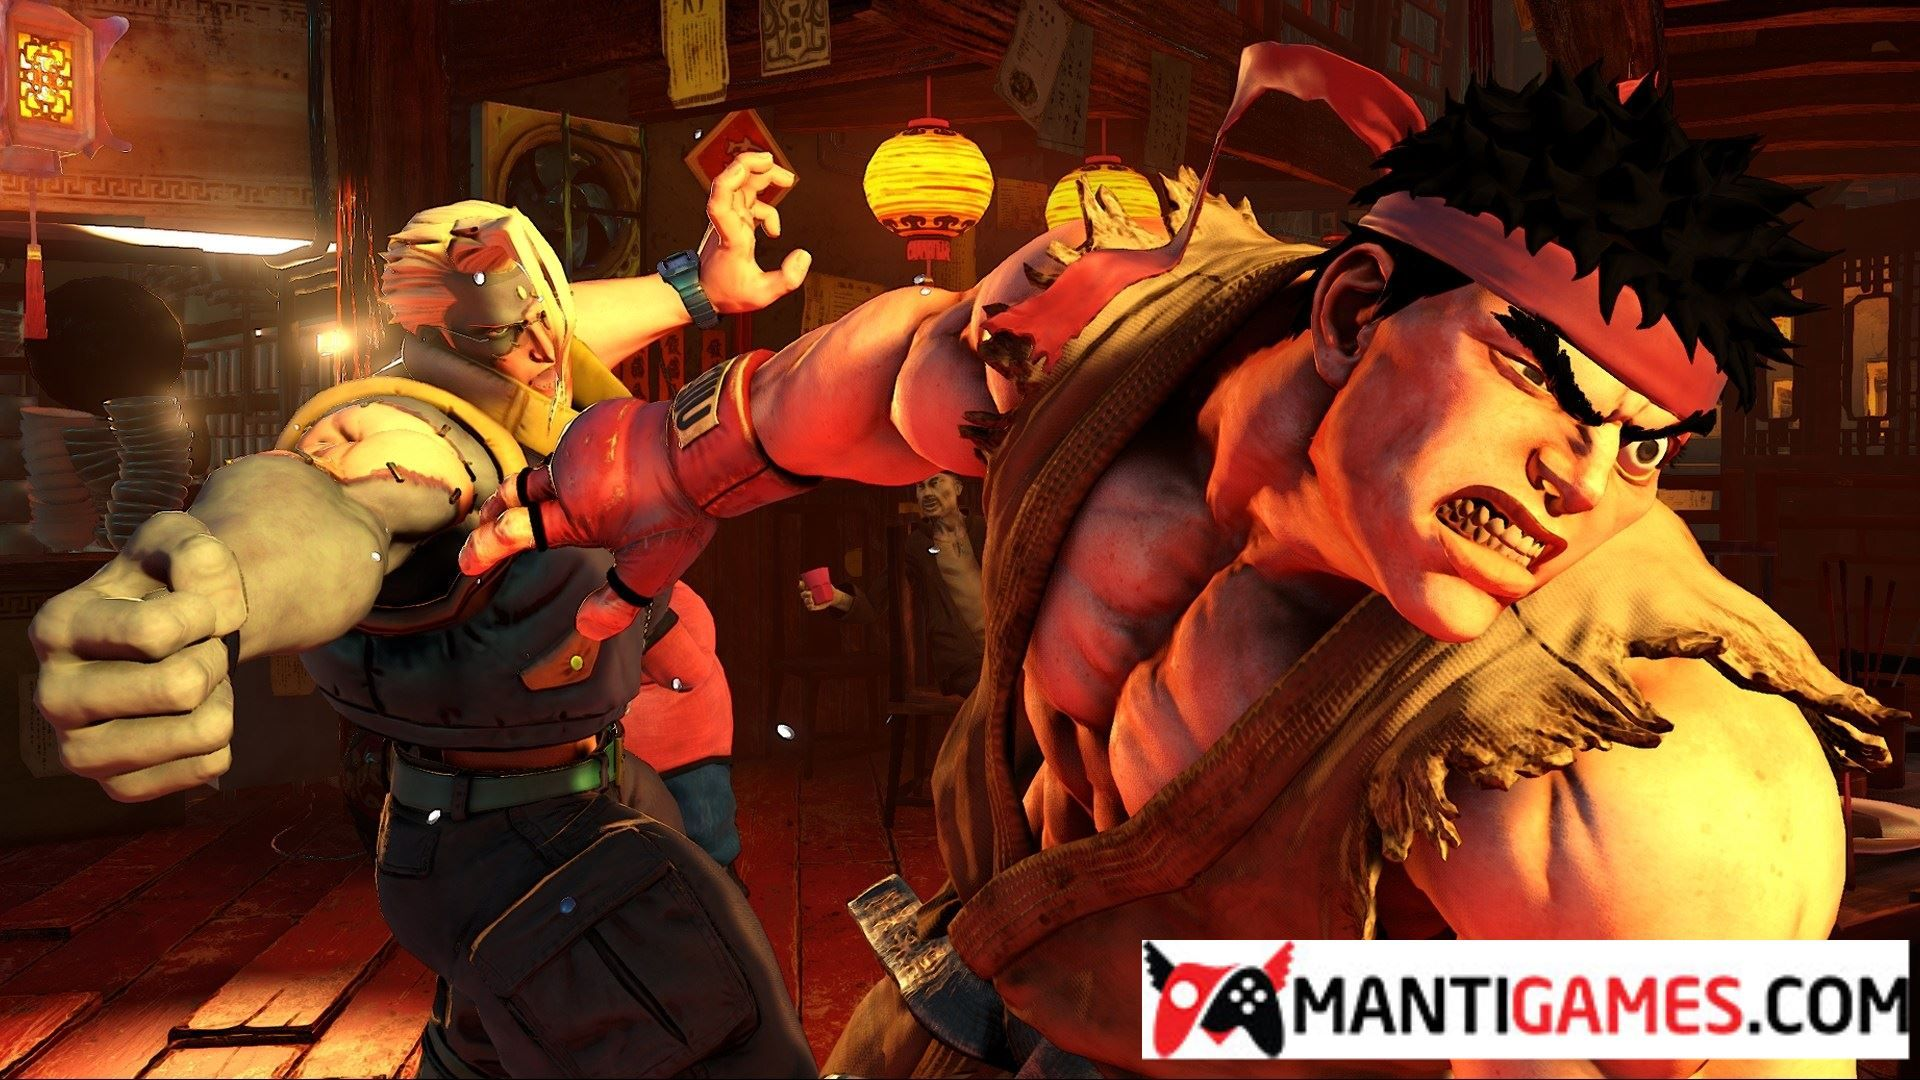 Top selected free online games to play Manti Games on